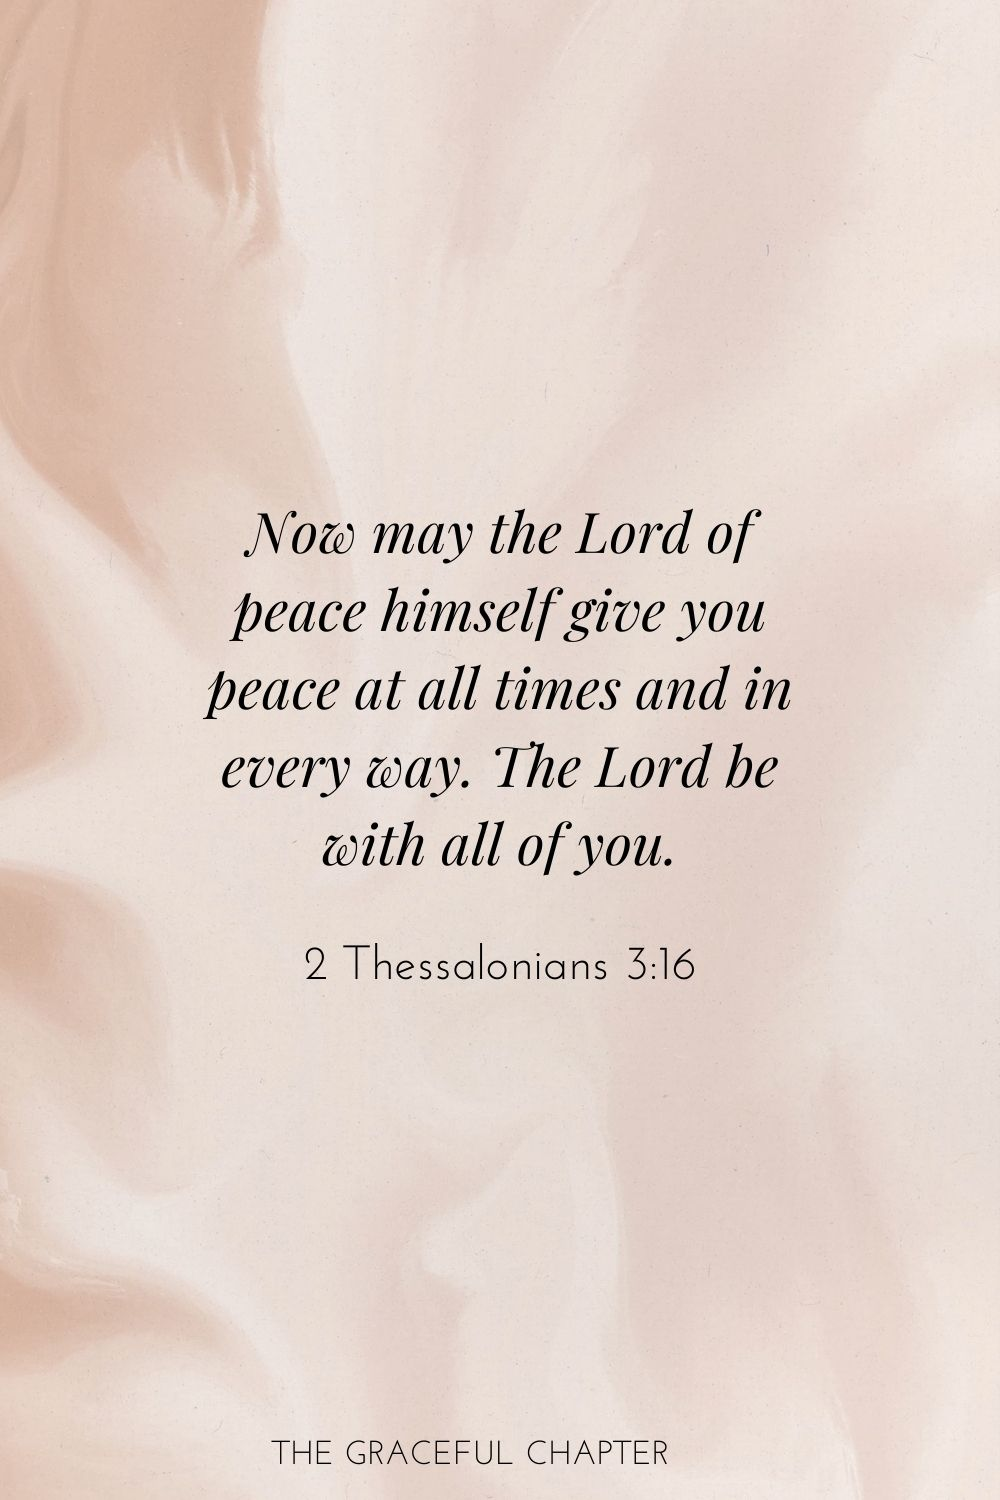 Now may the Lord of peace himself give you peace at all times and in every way. The Lord be with all of you. 2 Thessalonians 3:16